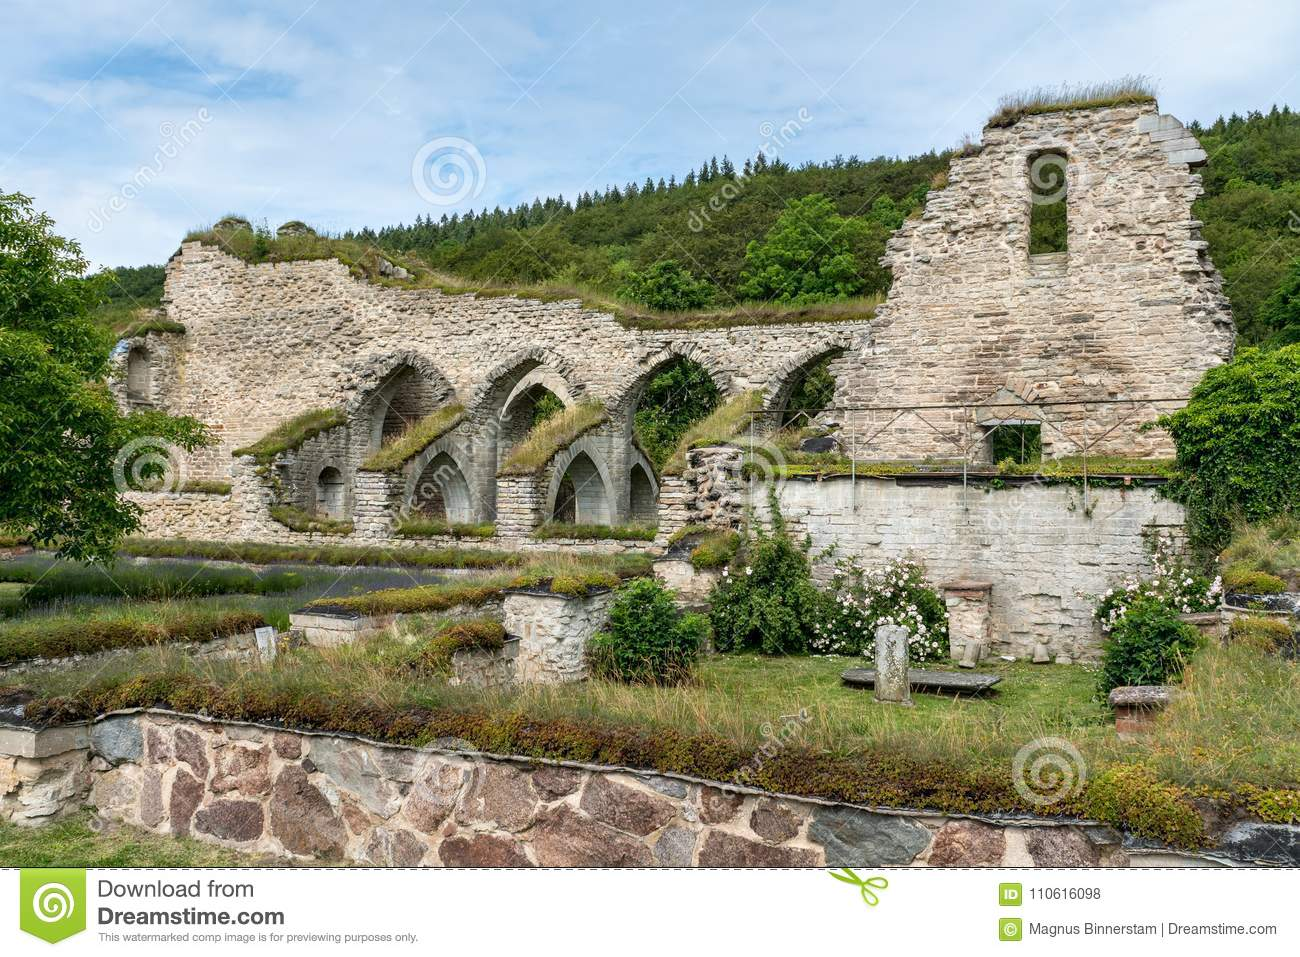 Ruin Of Monastery From The Middle Ages With Nice Garden In